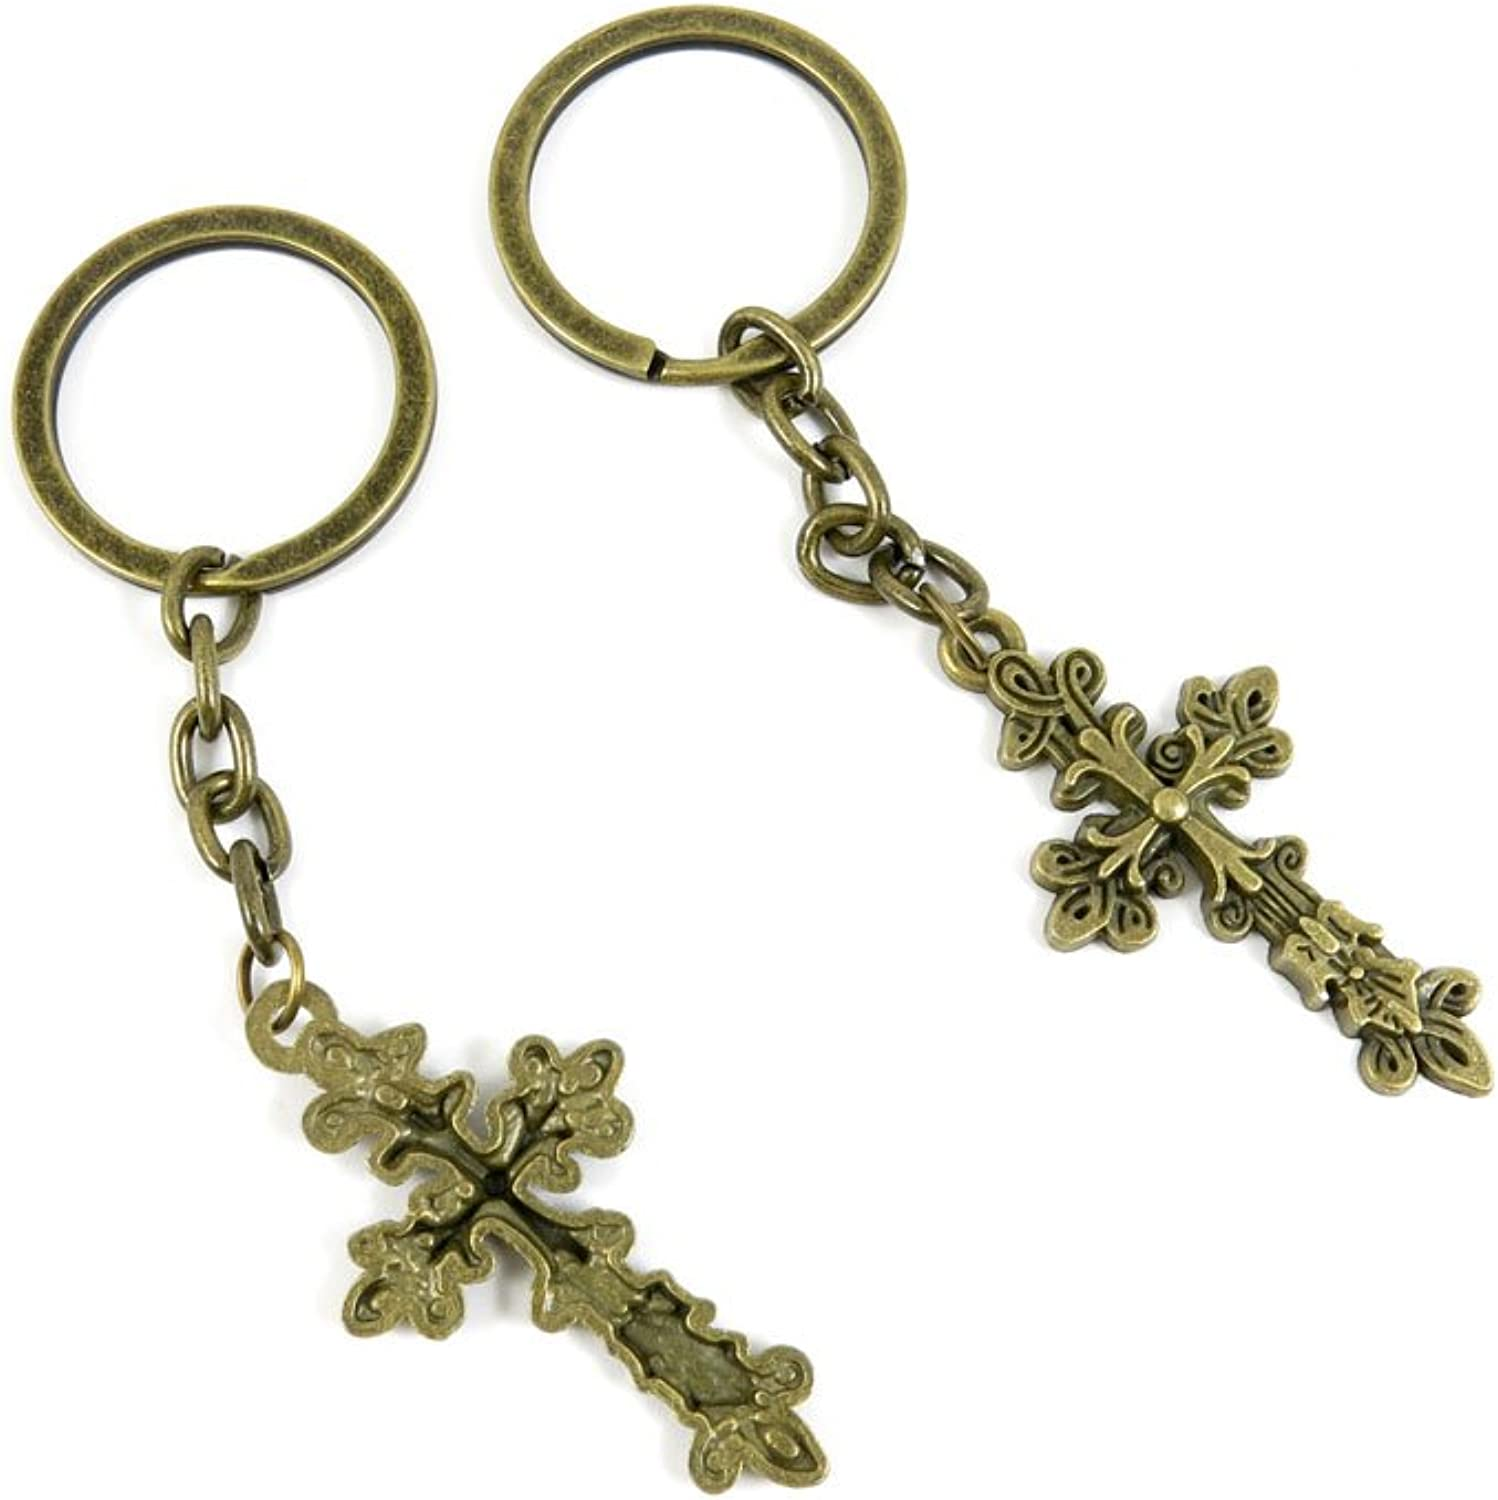 80 PCS Keyring Car Door Key Ring Tag Chain Keychain Wholesale Suppliers Charms Handmade T9QV4 Latin Cross